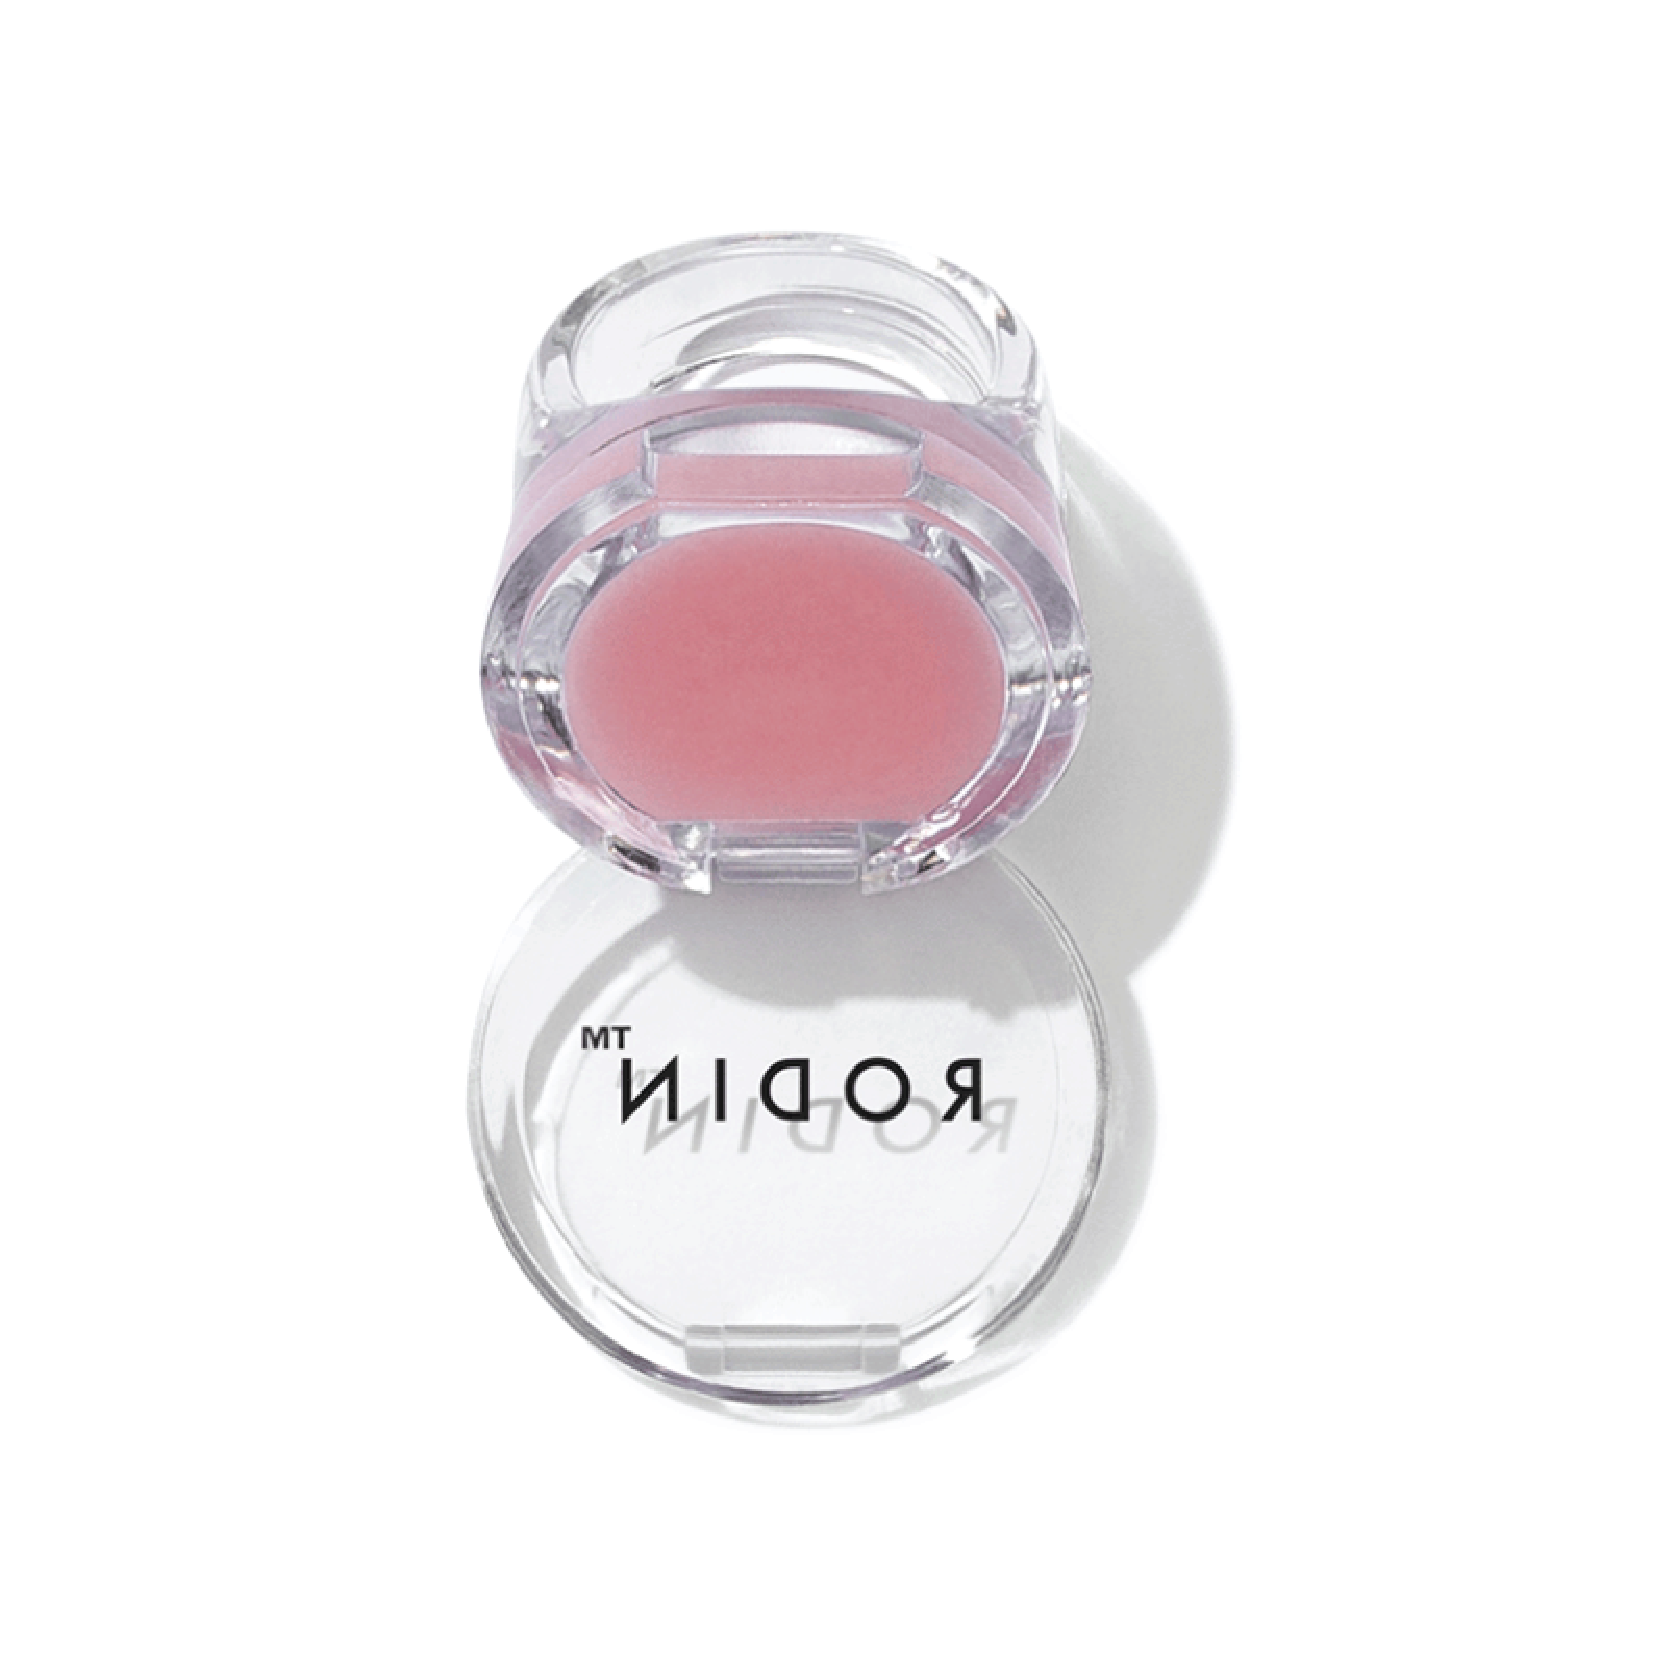 RODIN olio lusso Lip Balm Ring - $15 at RODINKnow someone who always carries around lip balm? Try this chic and convenient ring with shea butter and beeswax.